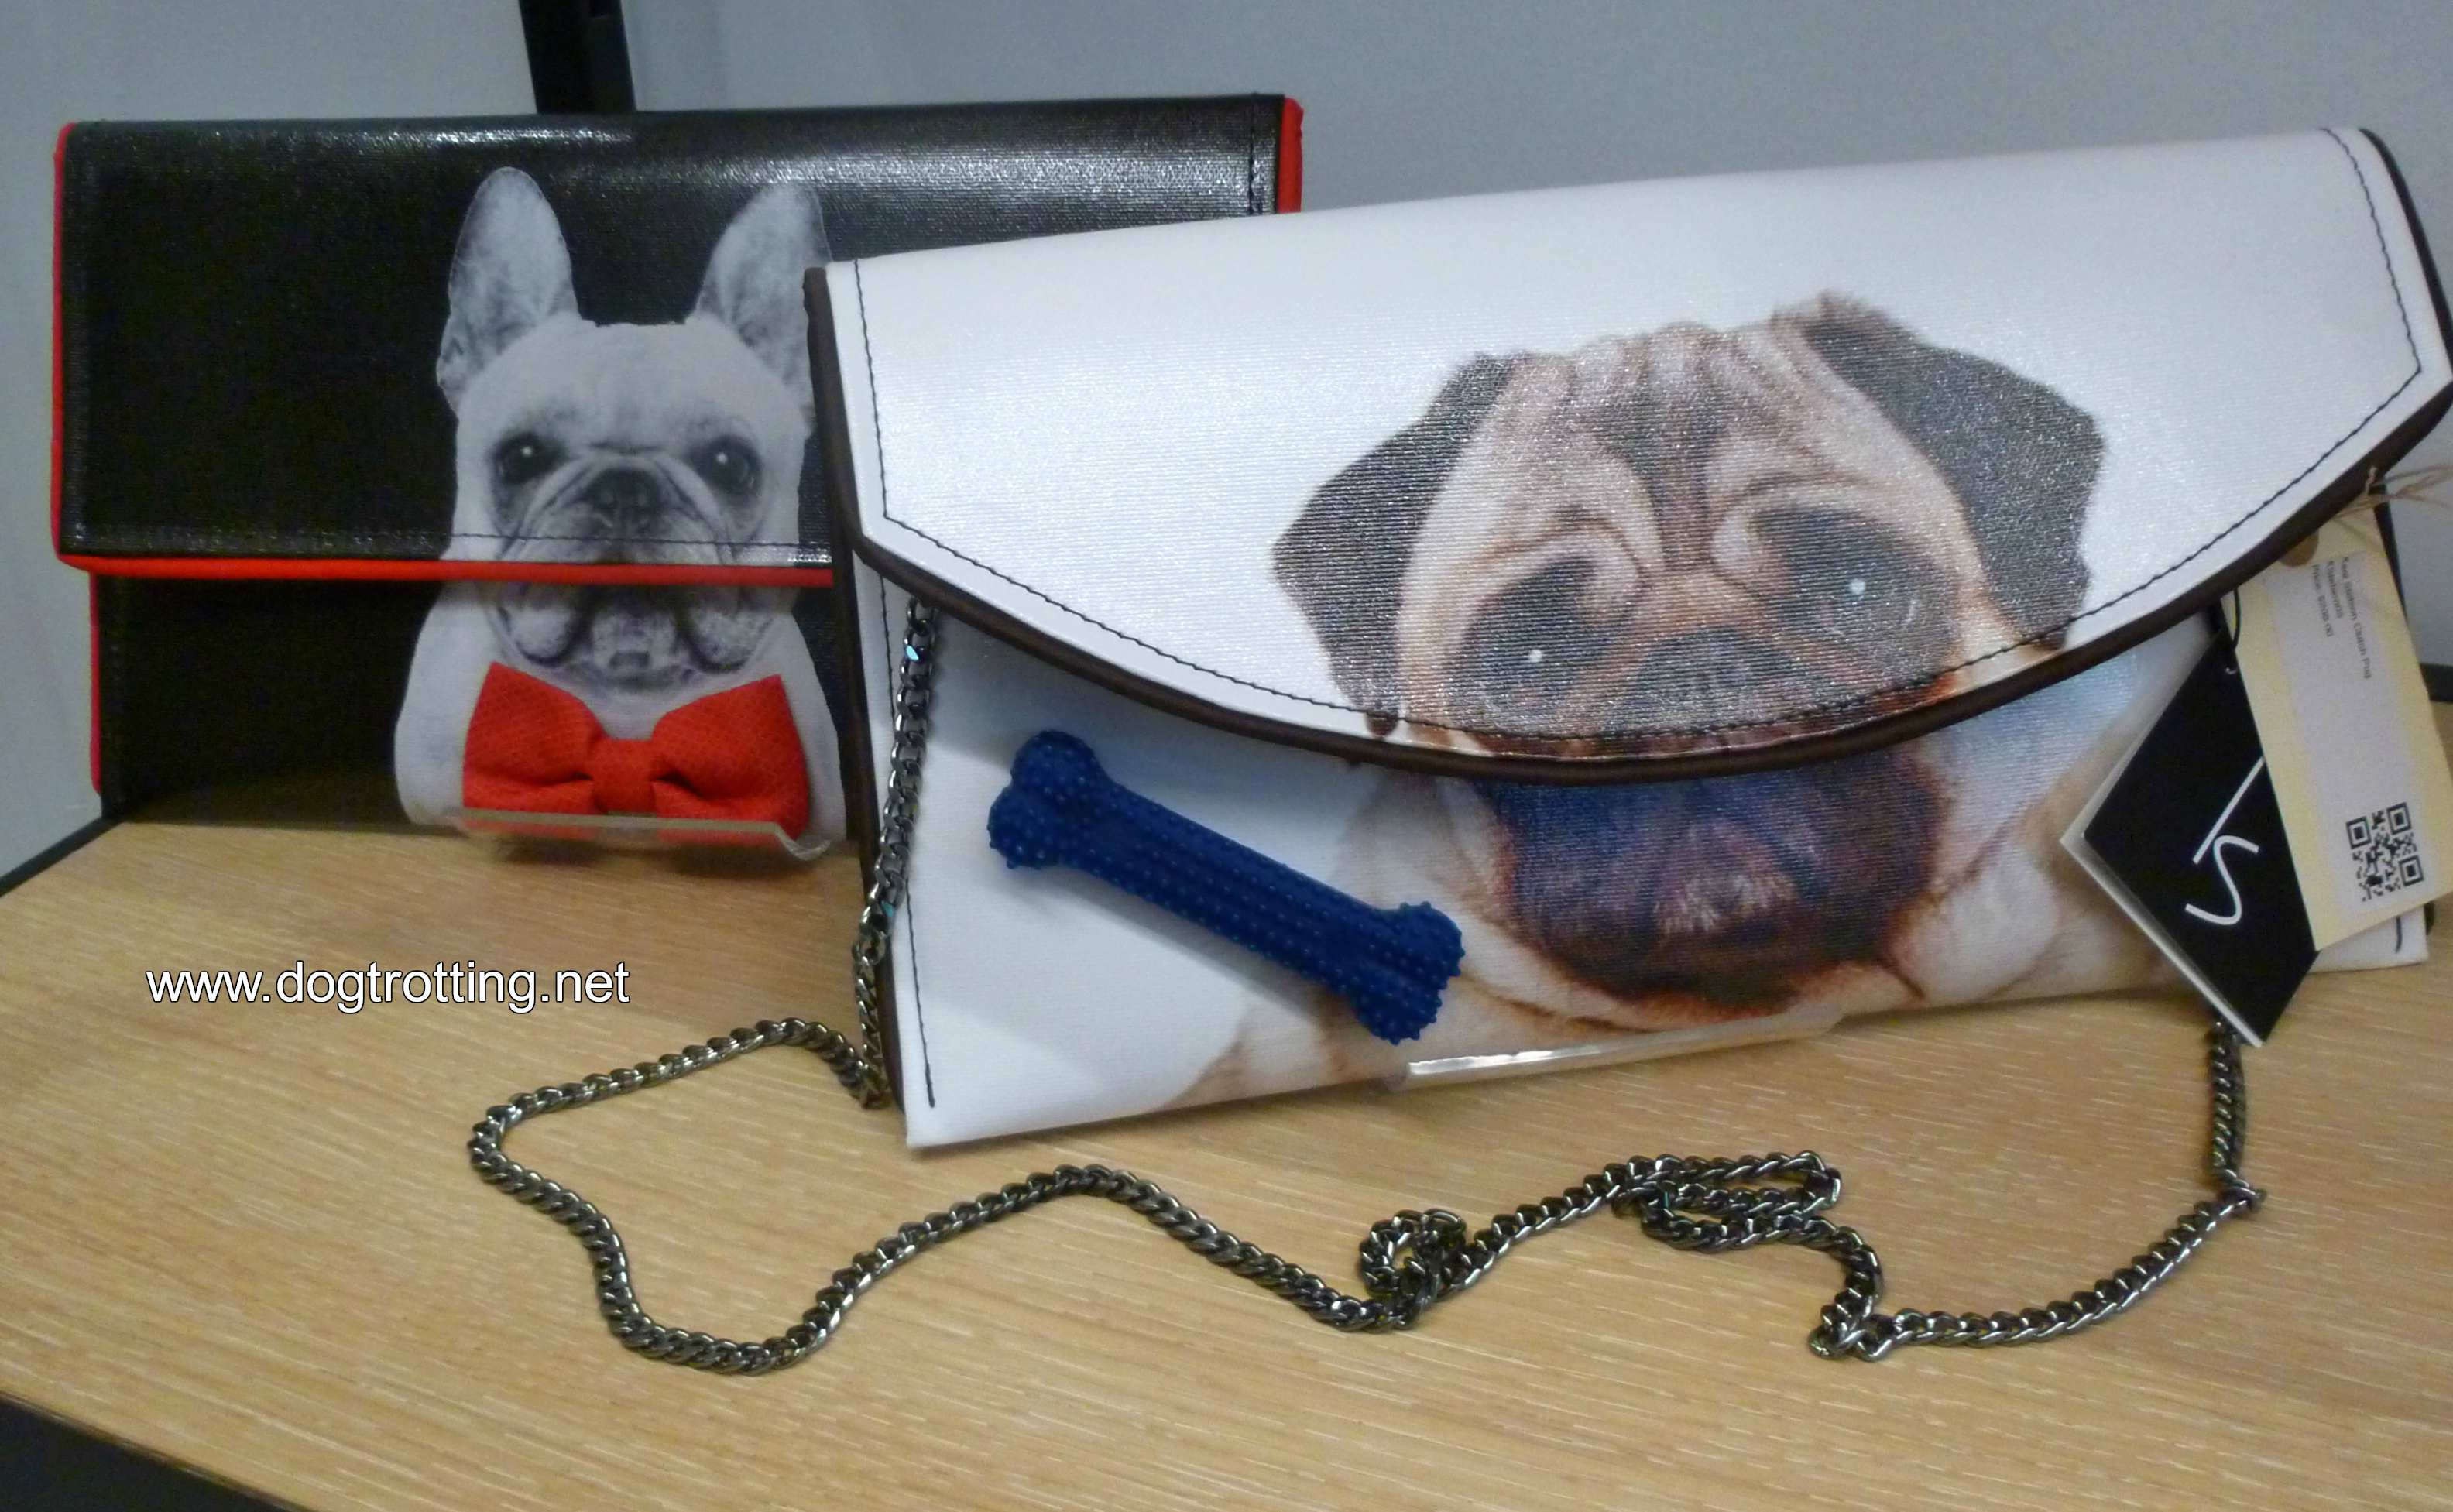 Kent Stetson designer bags with pug and french bulldog on them